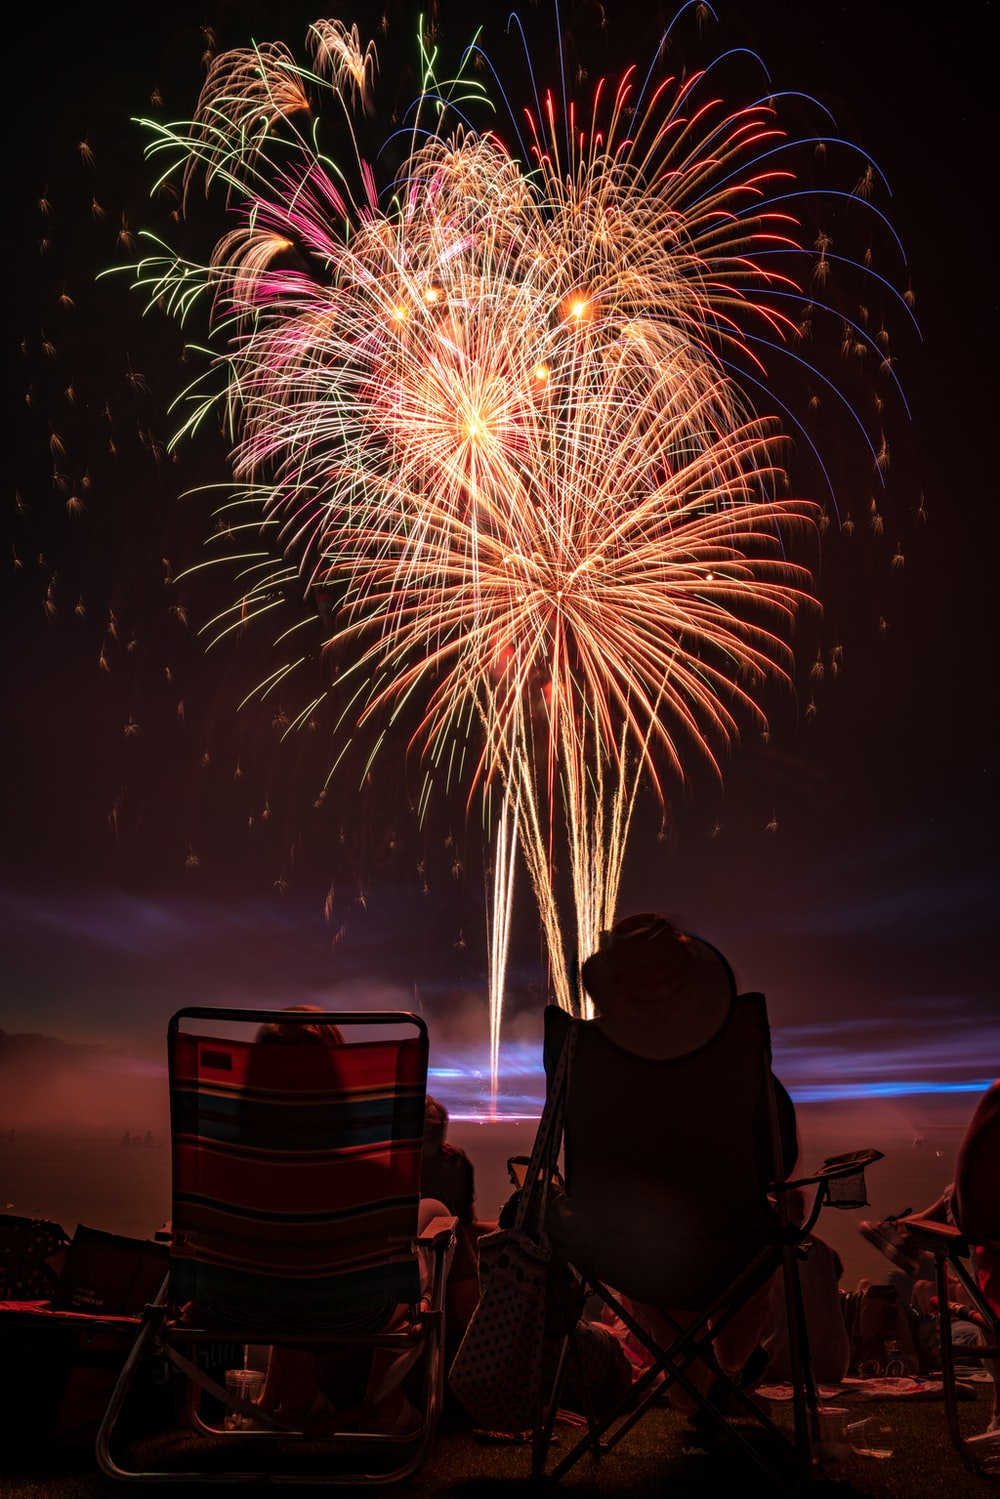 two people watching fireworks display